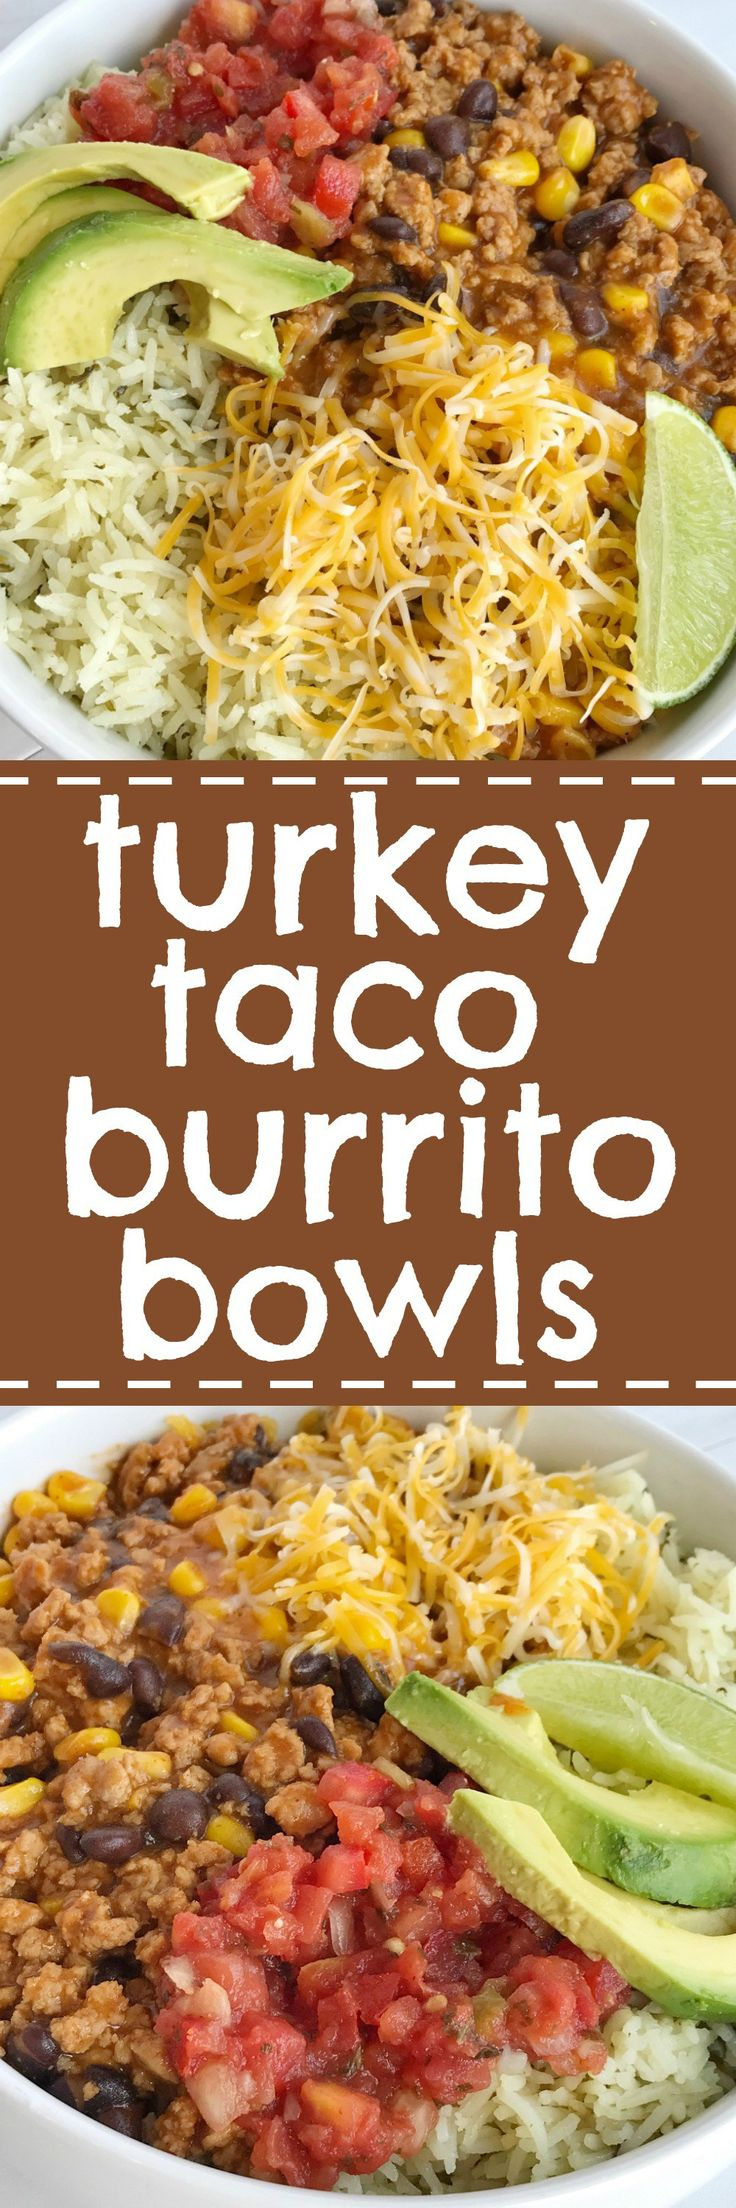 Turkey Taco Burrito Bowls are a family favorite meal! Let everyone build their own bowl for a fun do it yourself dinner. Turkey taco meat simmers on the stove top to make these burrito bowls so flavor (Favorite Meals)